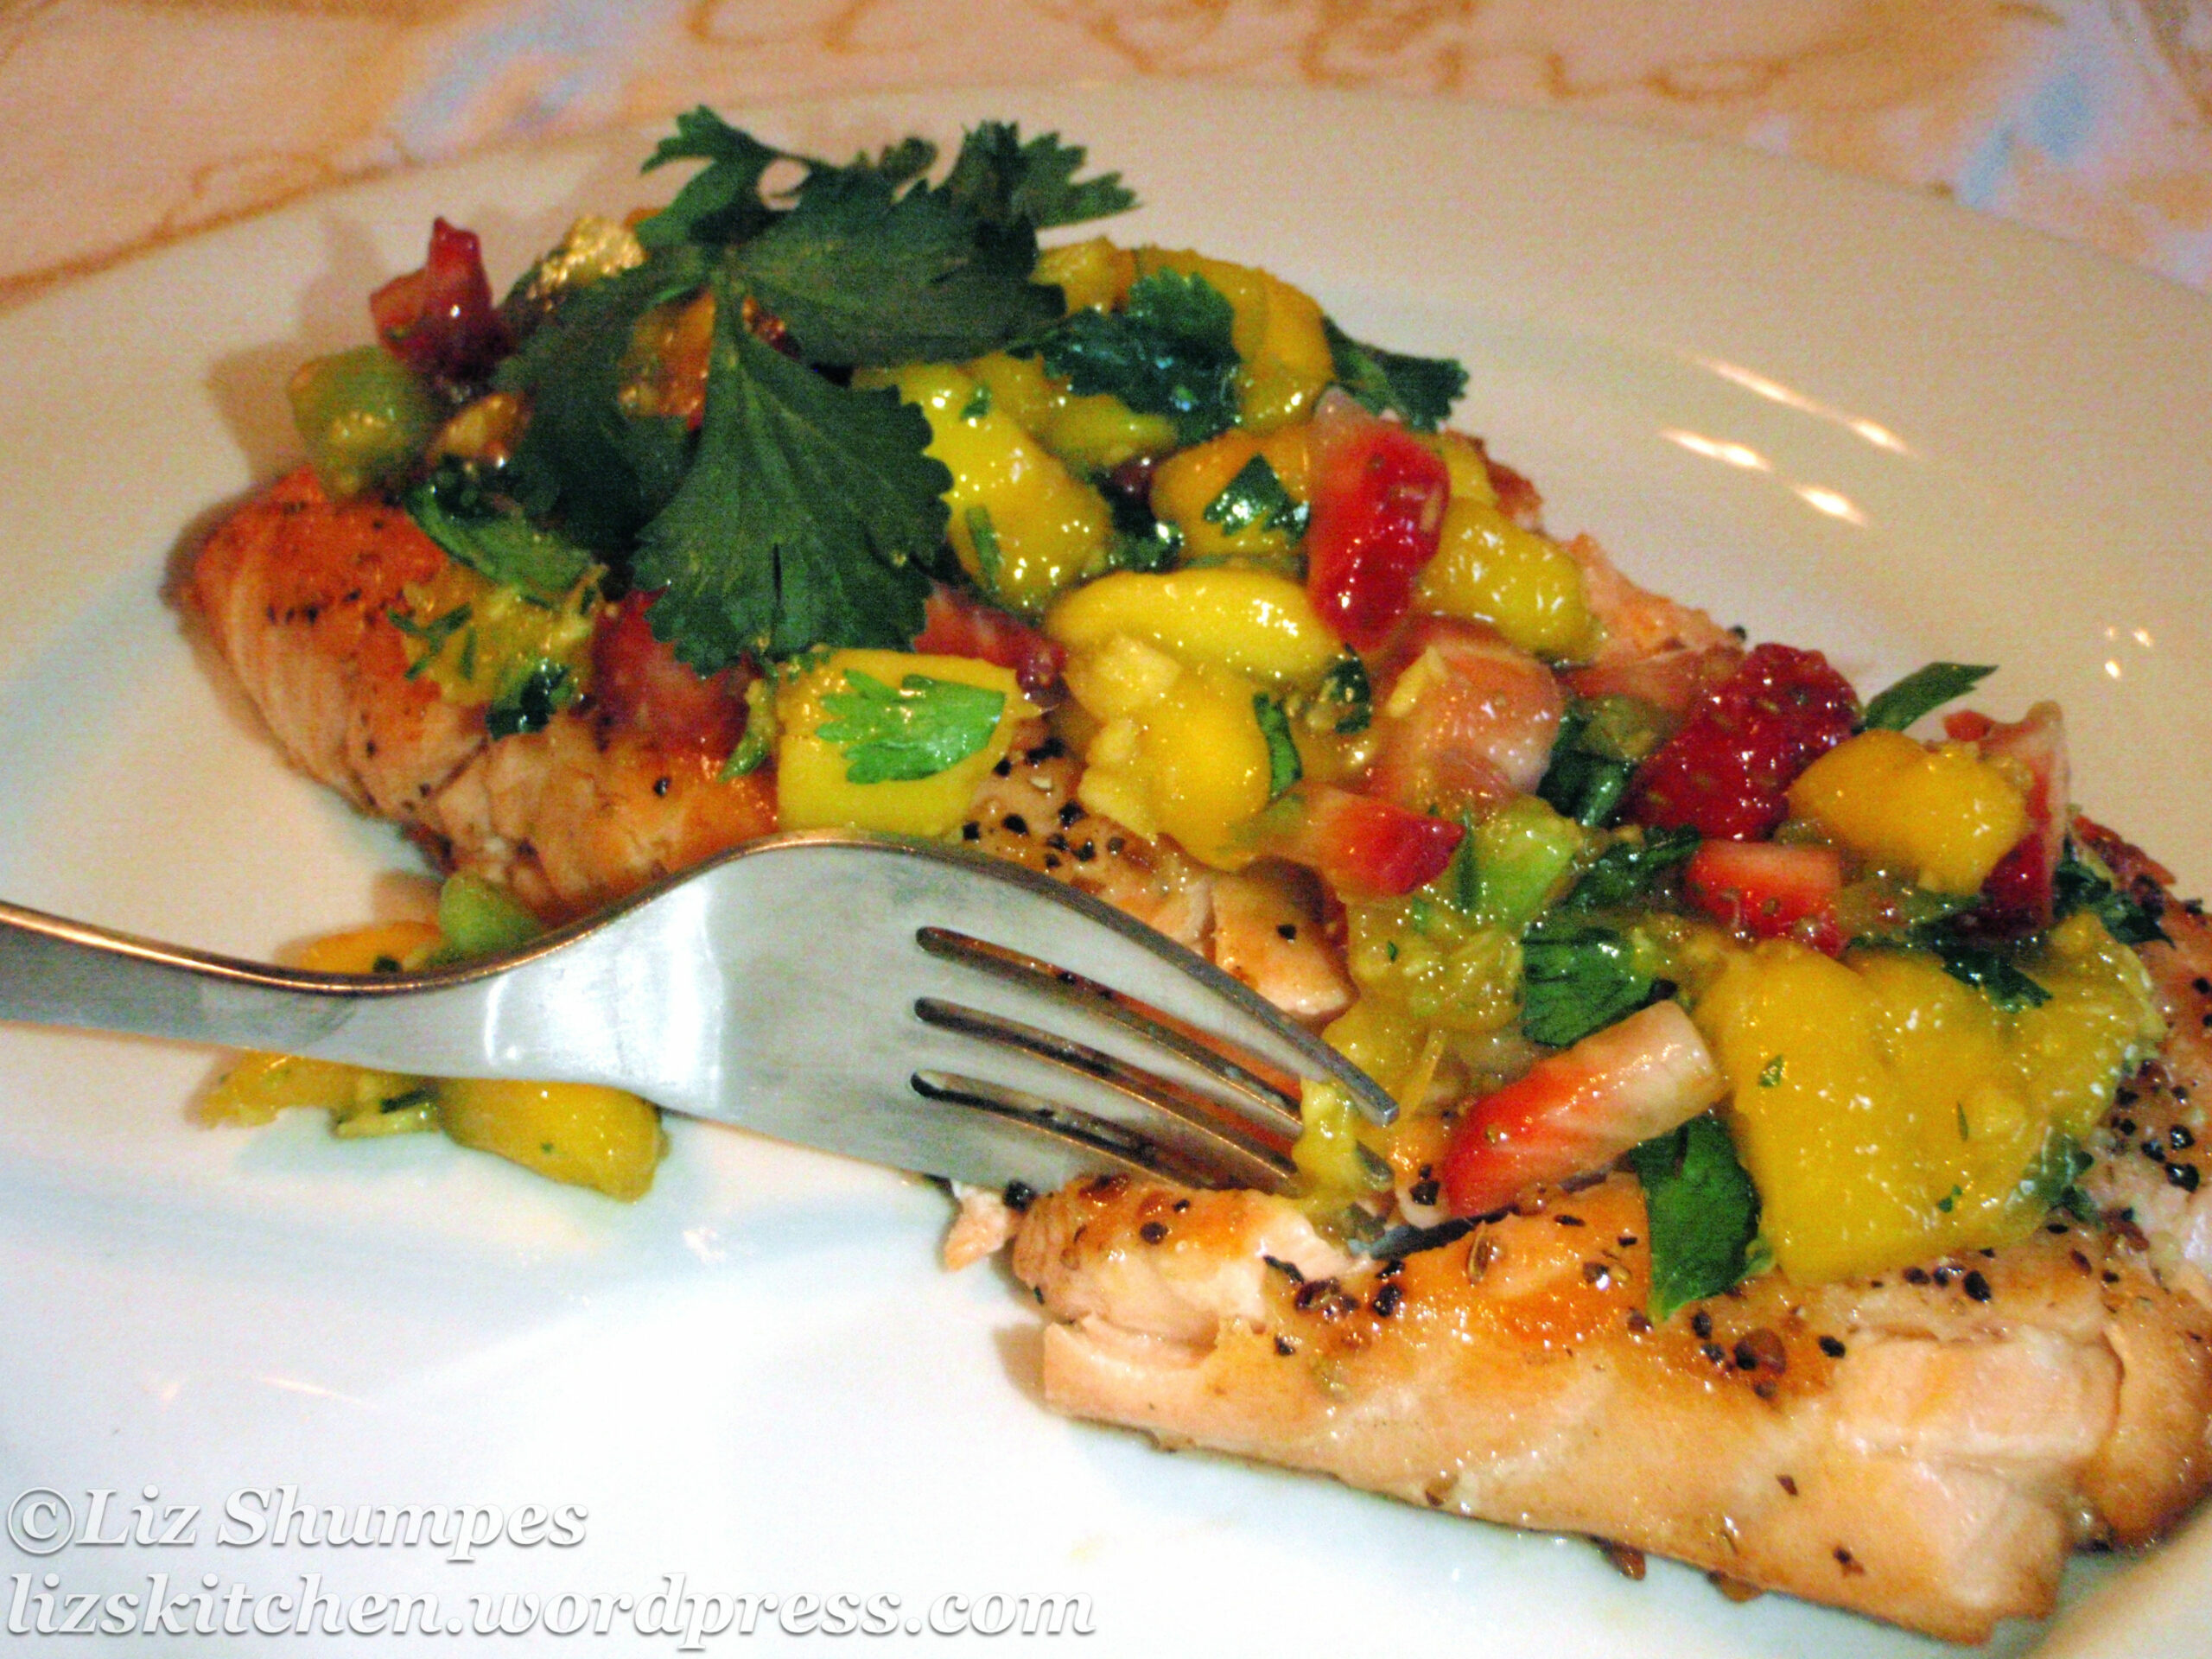 Grilled Steelhead Trout w/Mango Salsa | What's for Dinner?